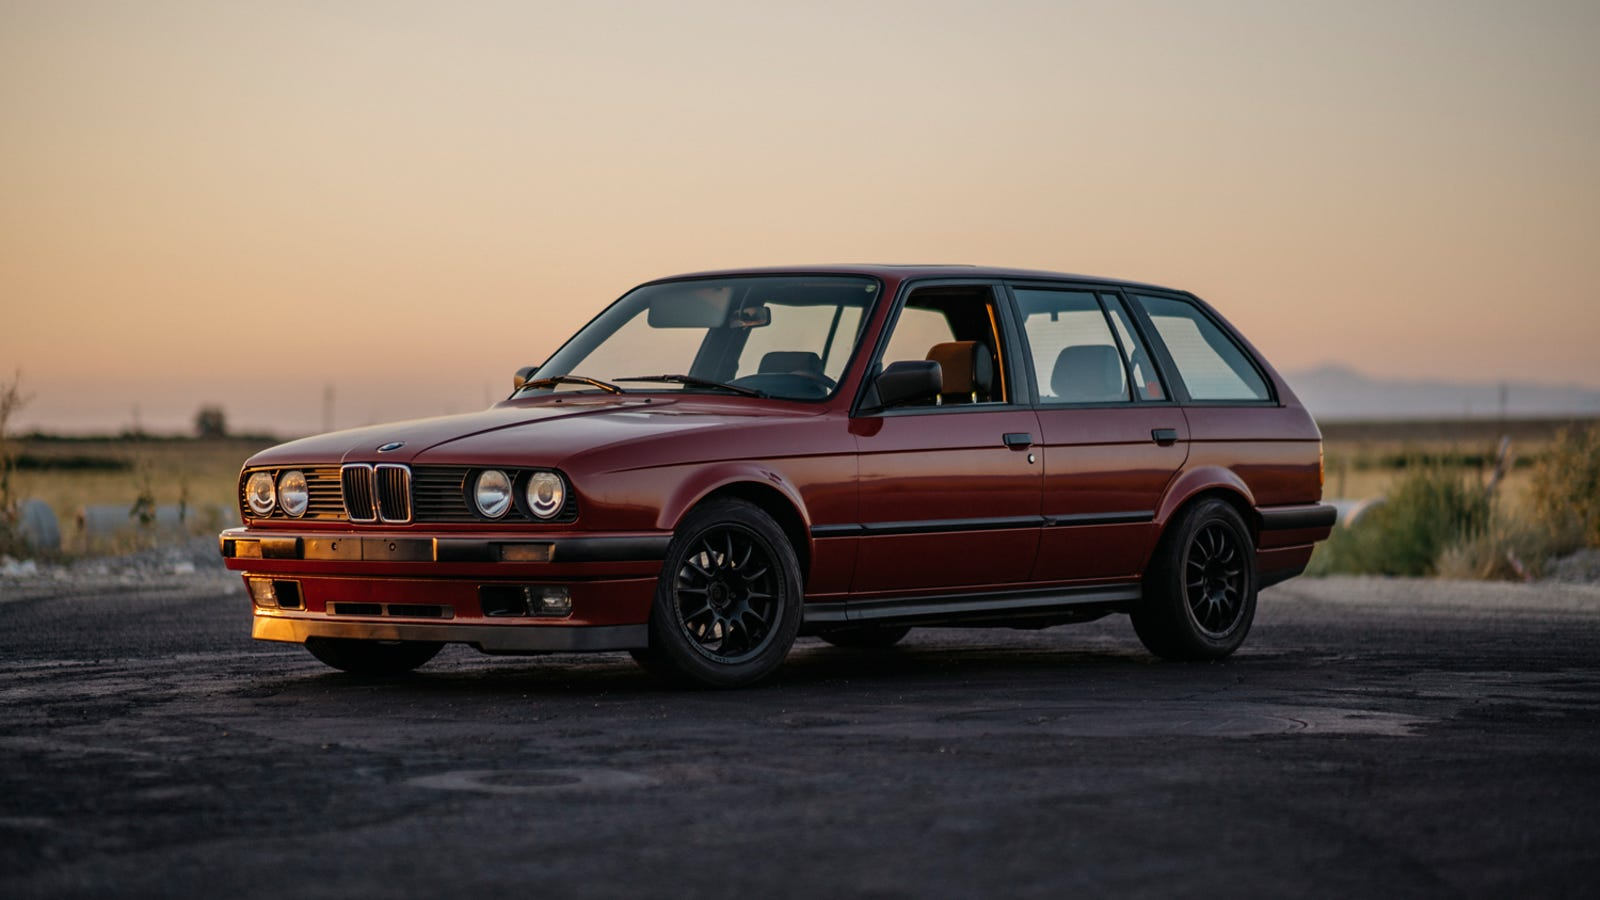 1994 1995 1996 1997 1998 Ford Mustang4 in addition Owning This Imported Bmw E30 Wagon Was Everything I Dre 1789114864 additionally Is There Any Awd Sedans Under 20k further 2018 Toyota Rush Images Leak Ahead Of Launch together with Volkswagen Jetta Vs Volkswagen Passat. on 4 cylinder sedans